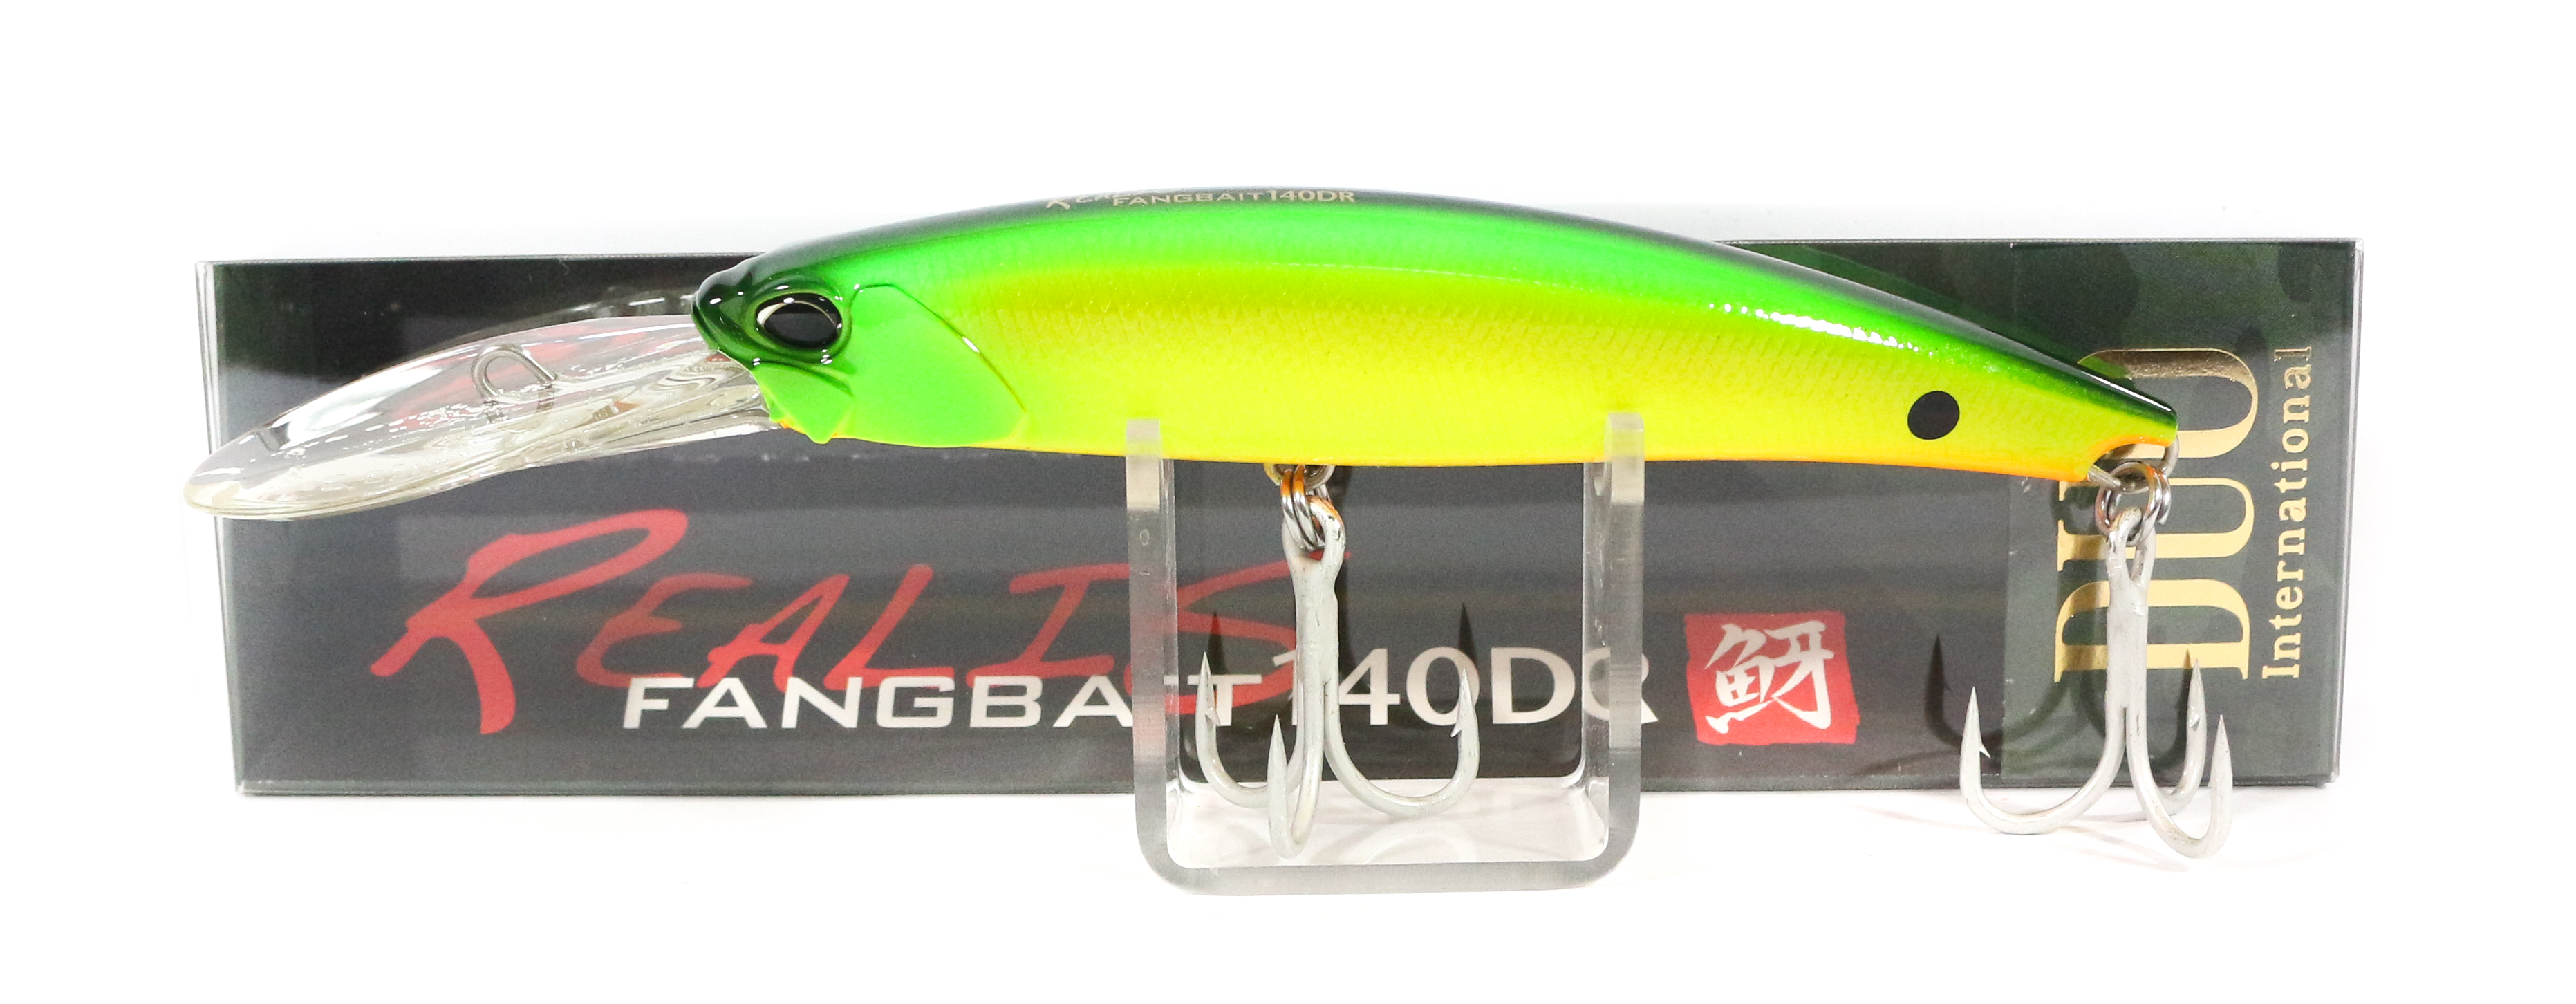 Duo Realis Fangbait 140DR Floating Lure ACC3151 (3847)